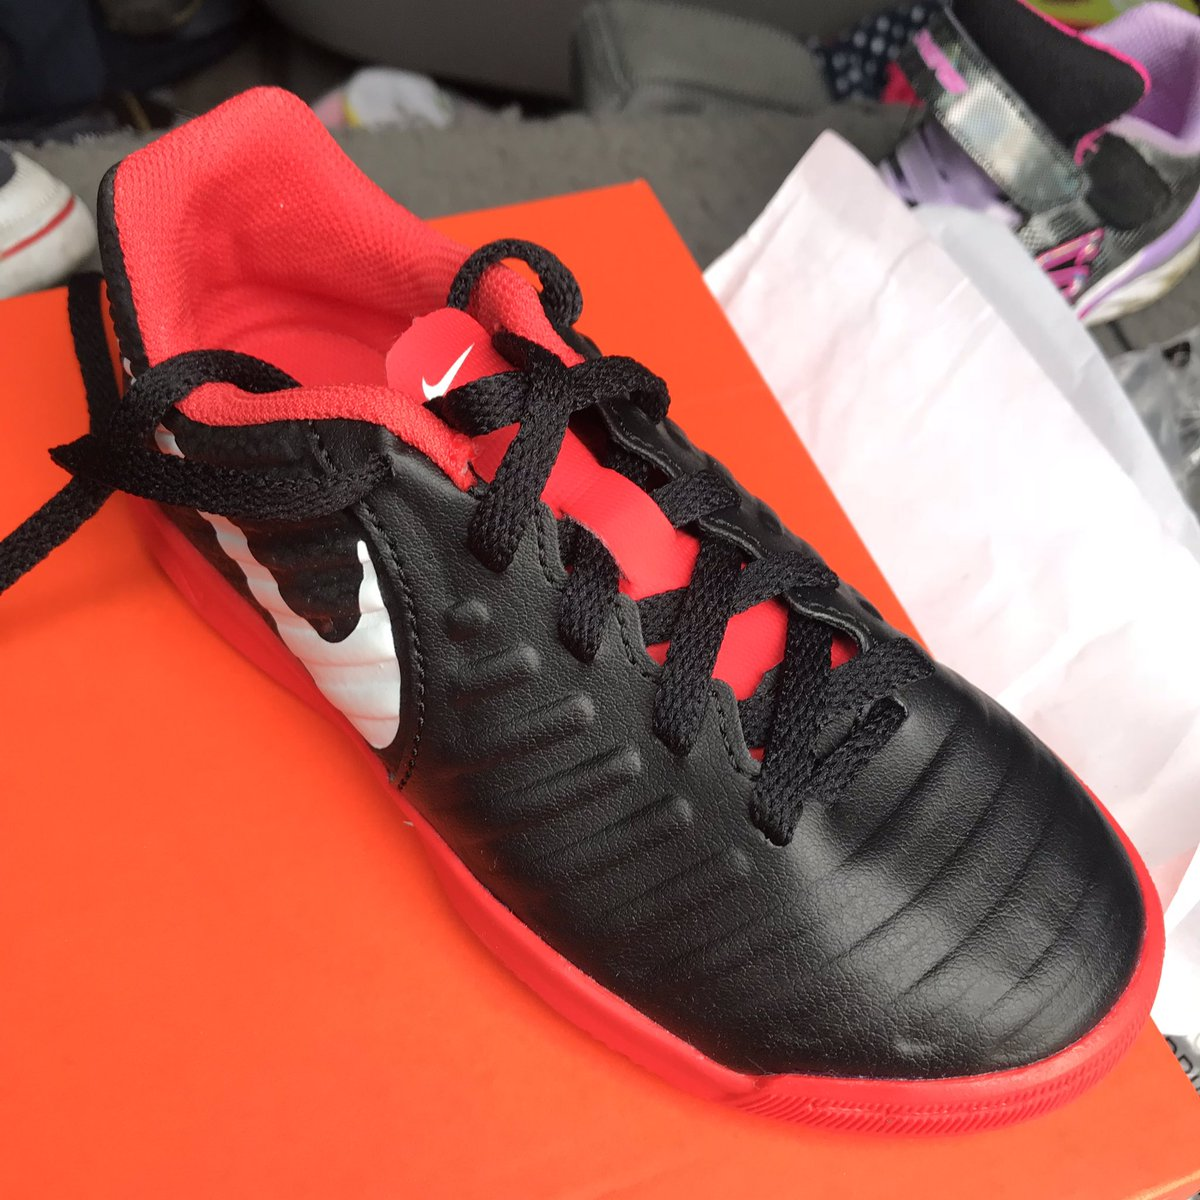 3dac4c19c5d8 ... sc101 on twitter new indoor shoes for the next alex morgan wannabe ...